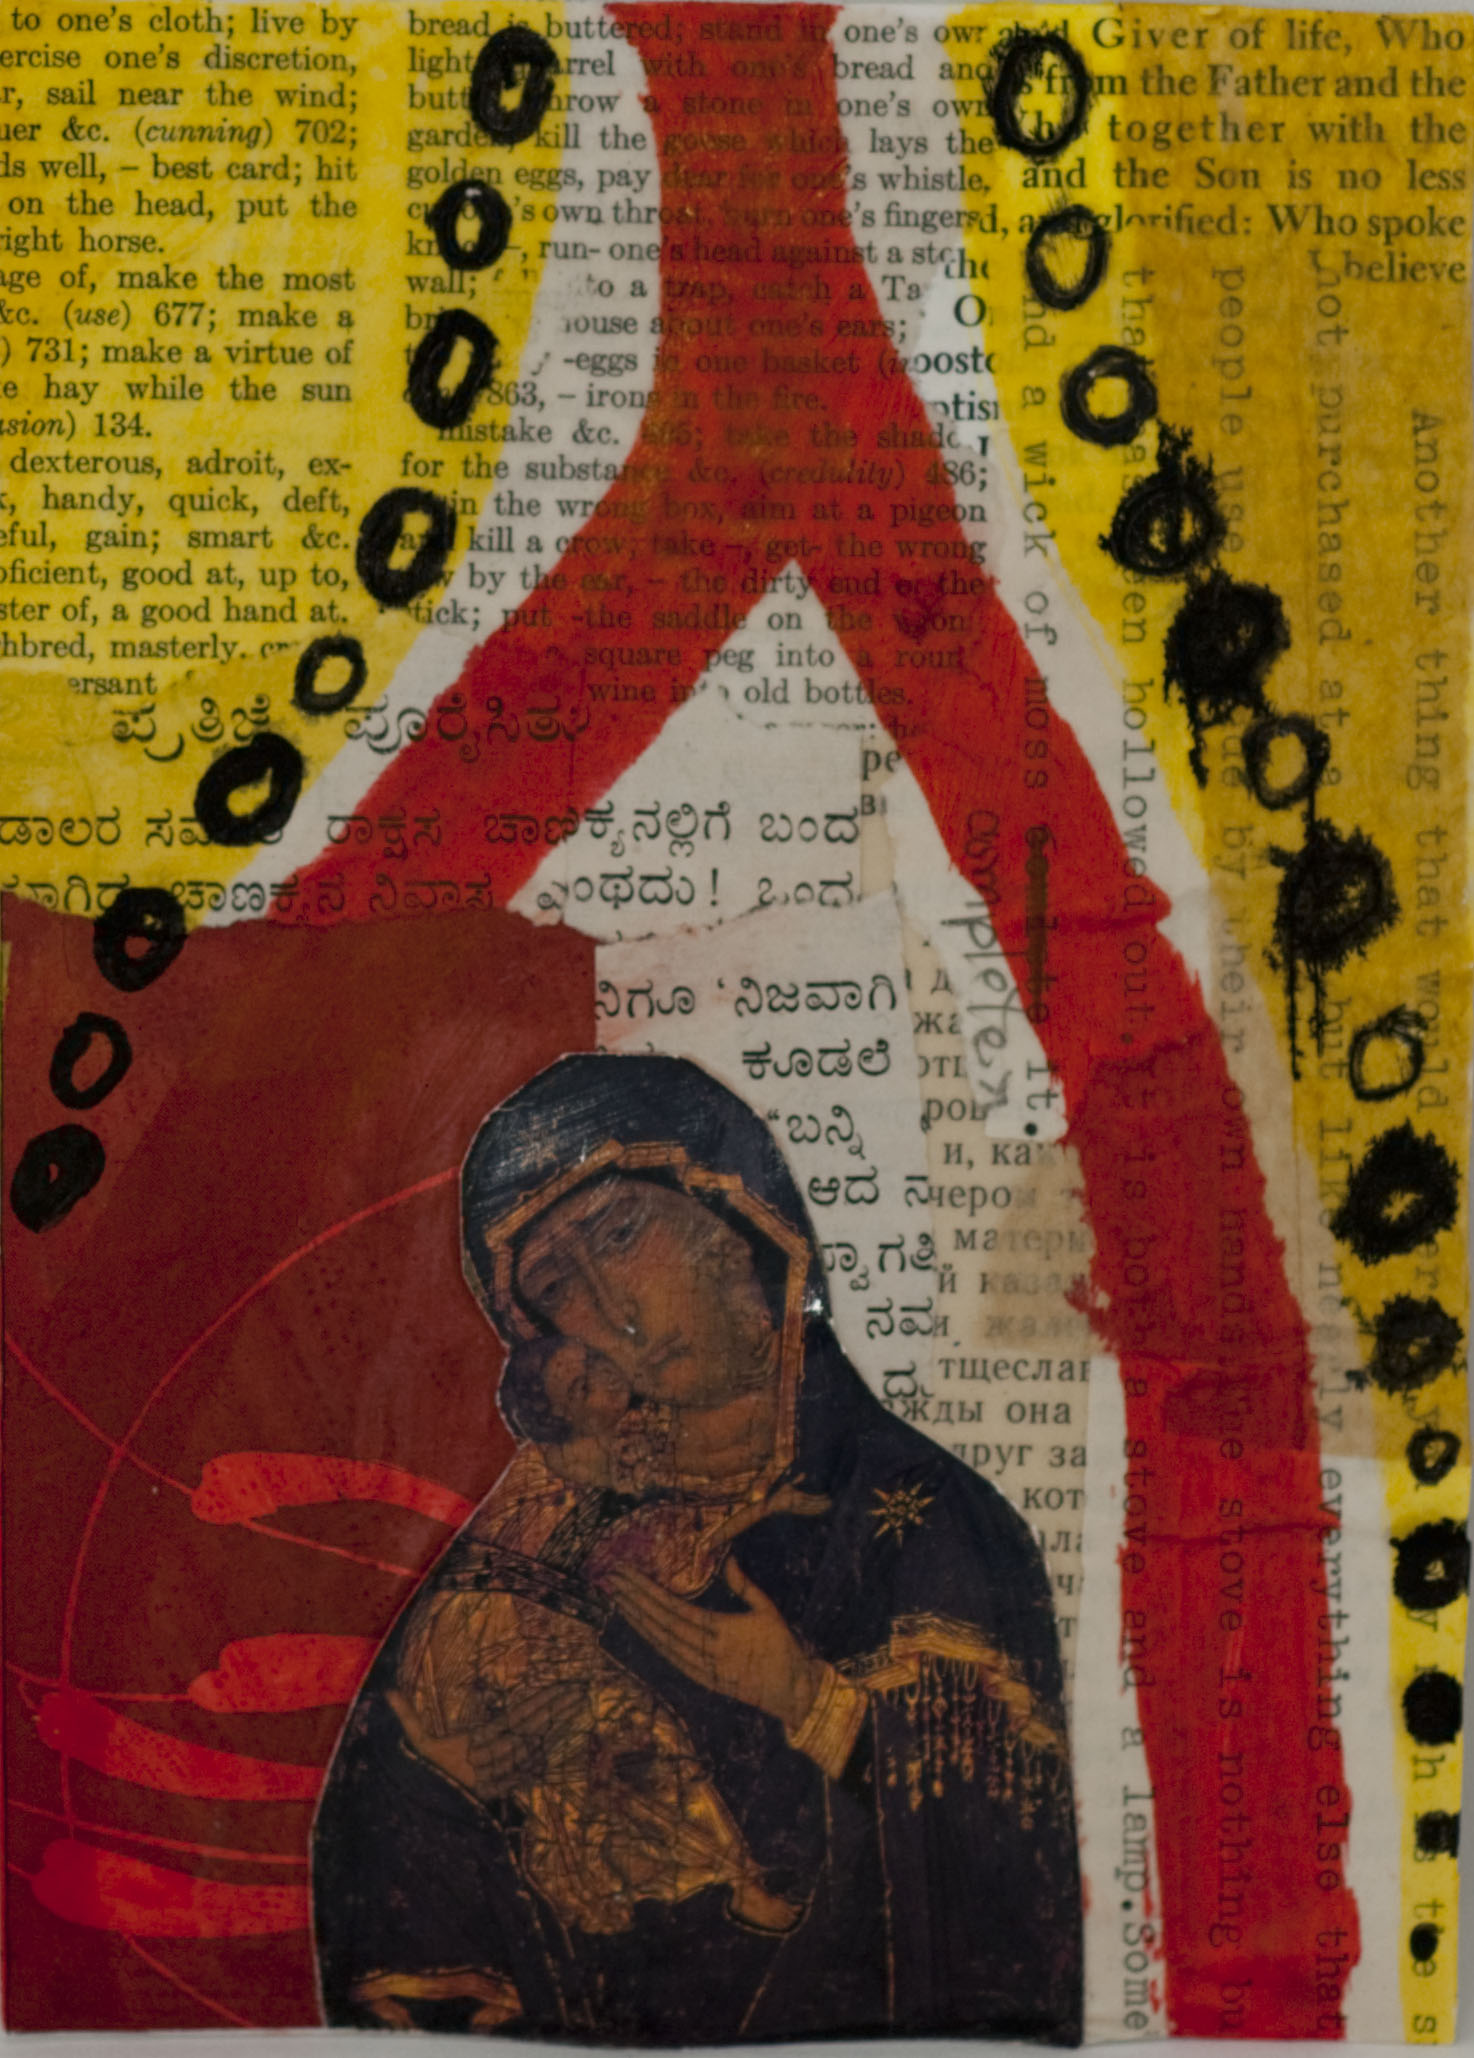 collage primarily red and yellow with icon of Virgin Mary